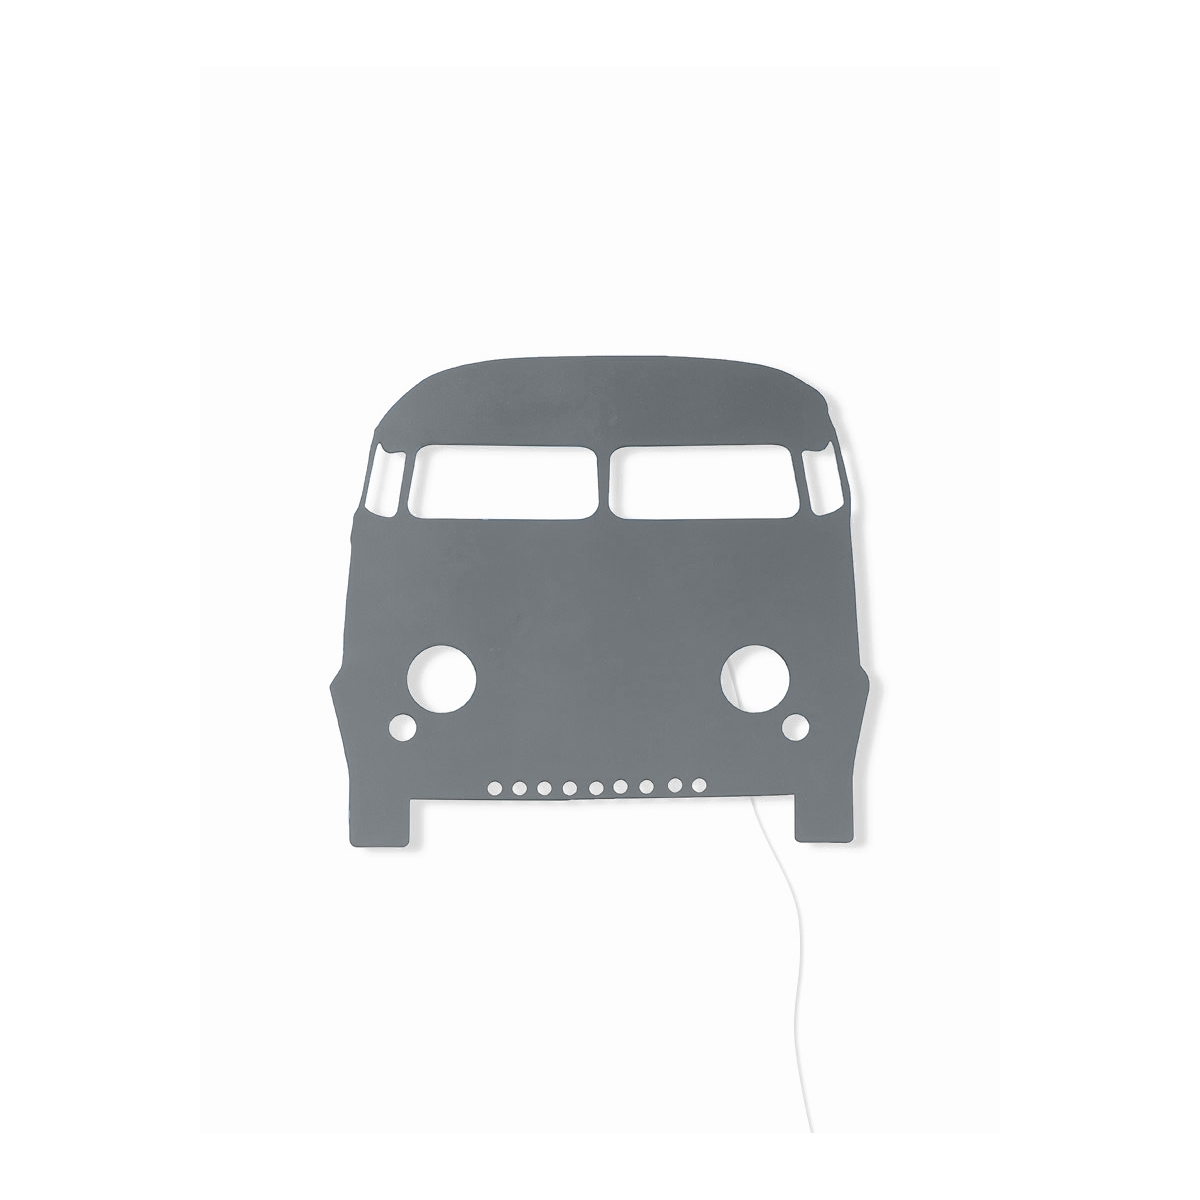 Barnlampa Car Lamp dark grey, Ferm Living